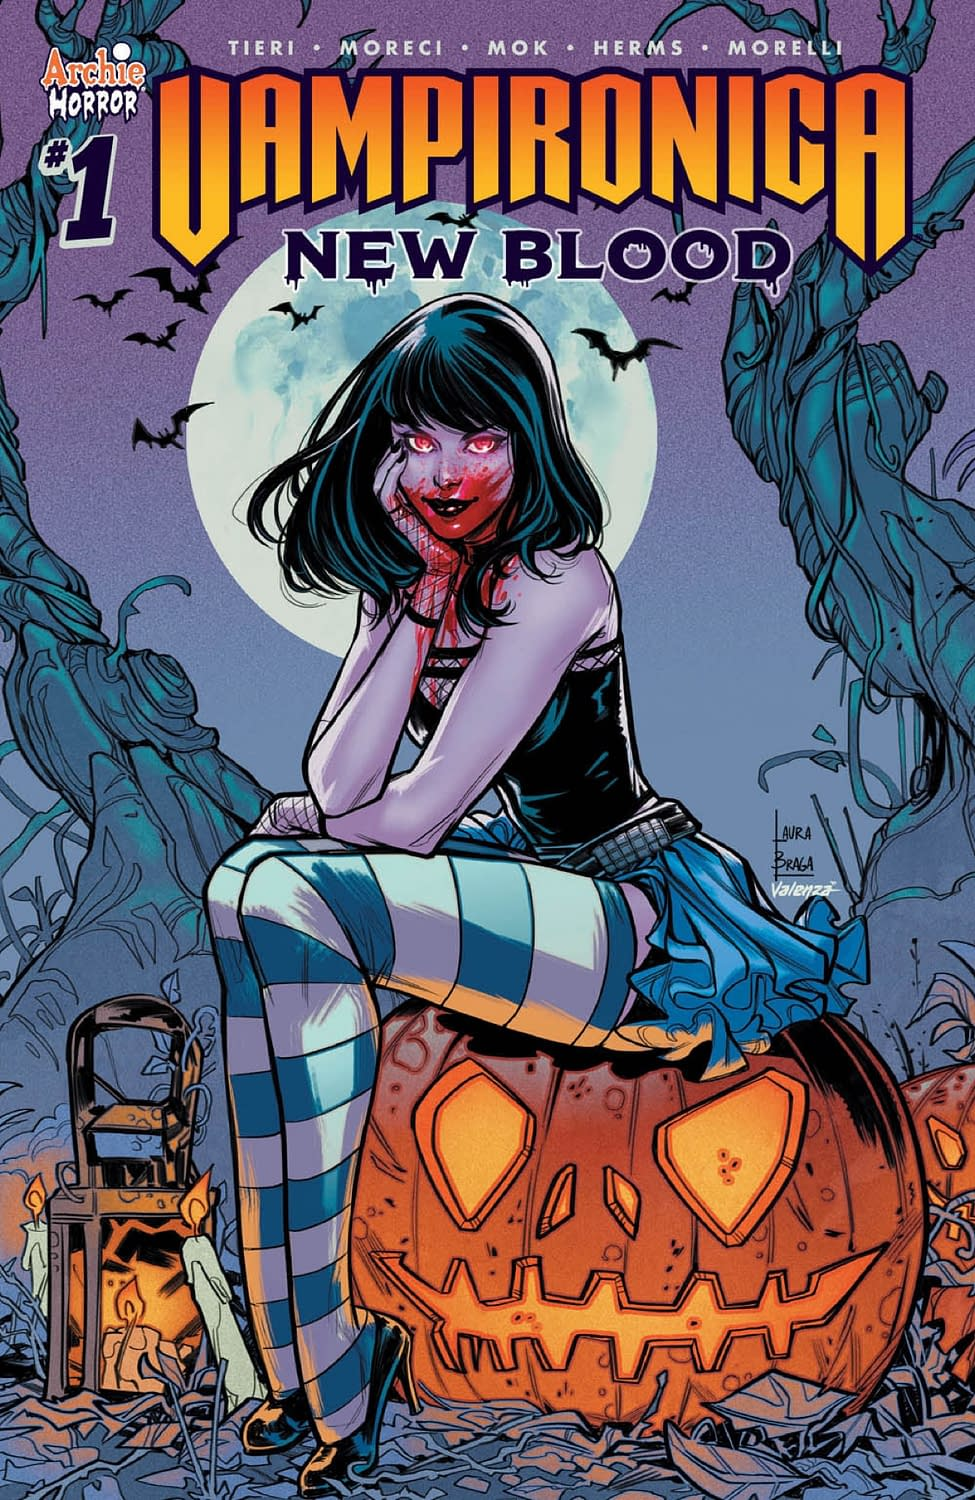 Vampironica Returns